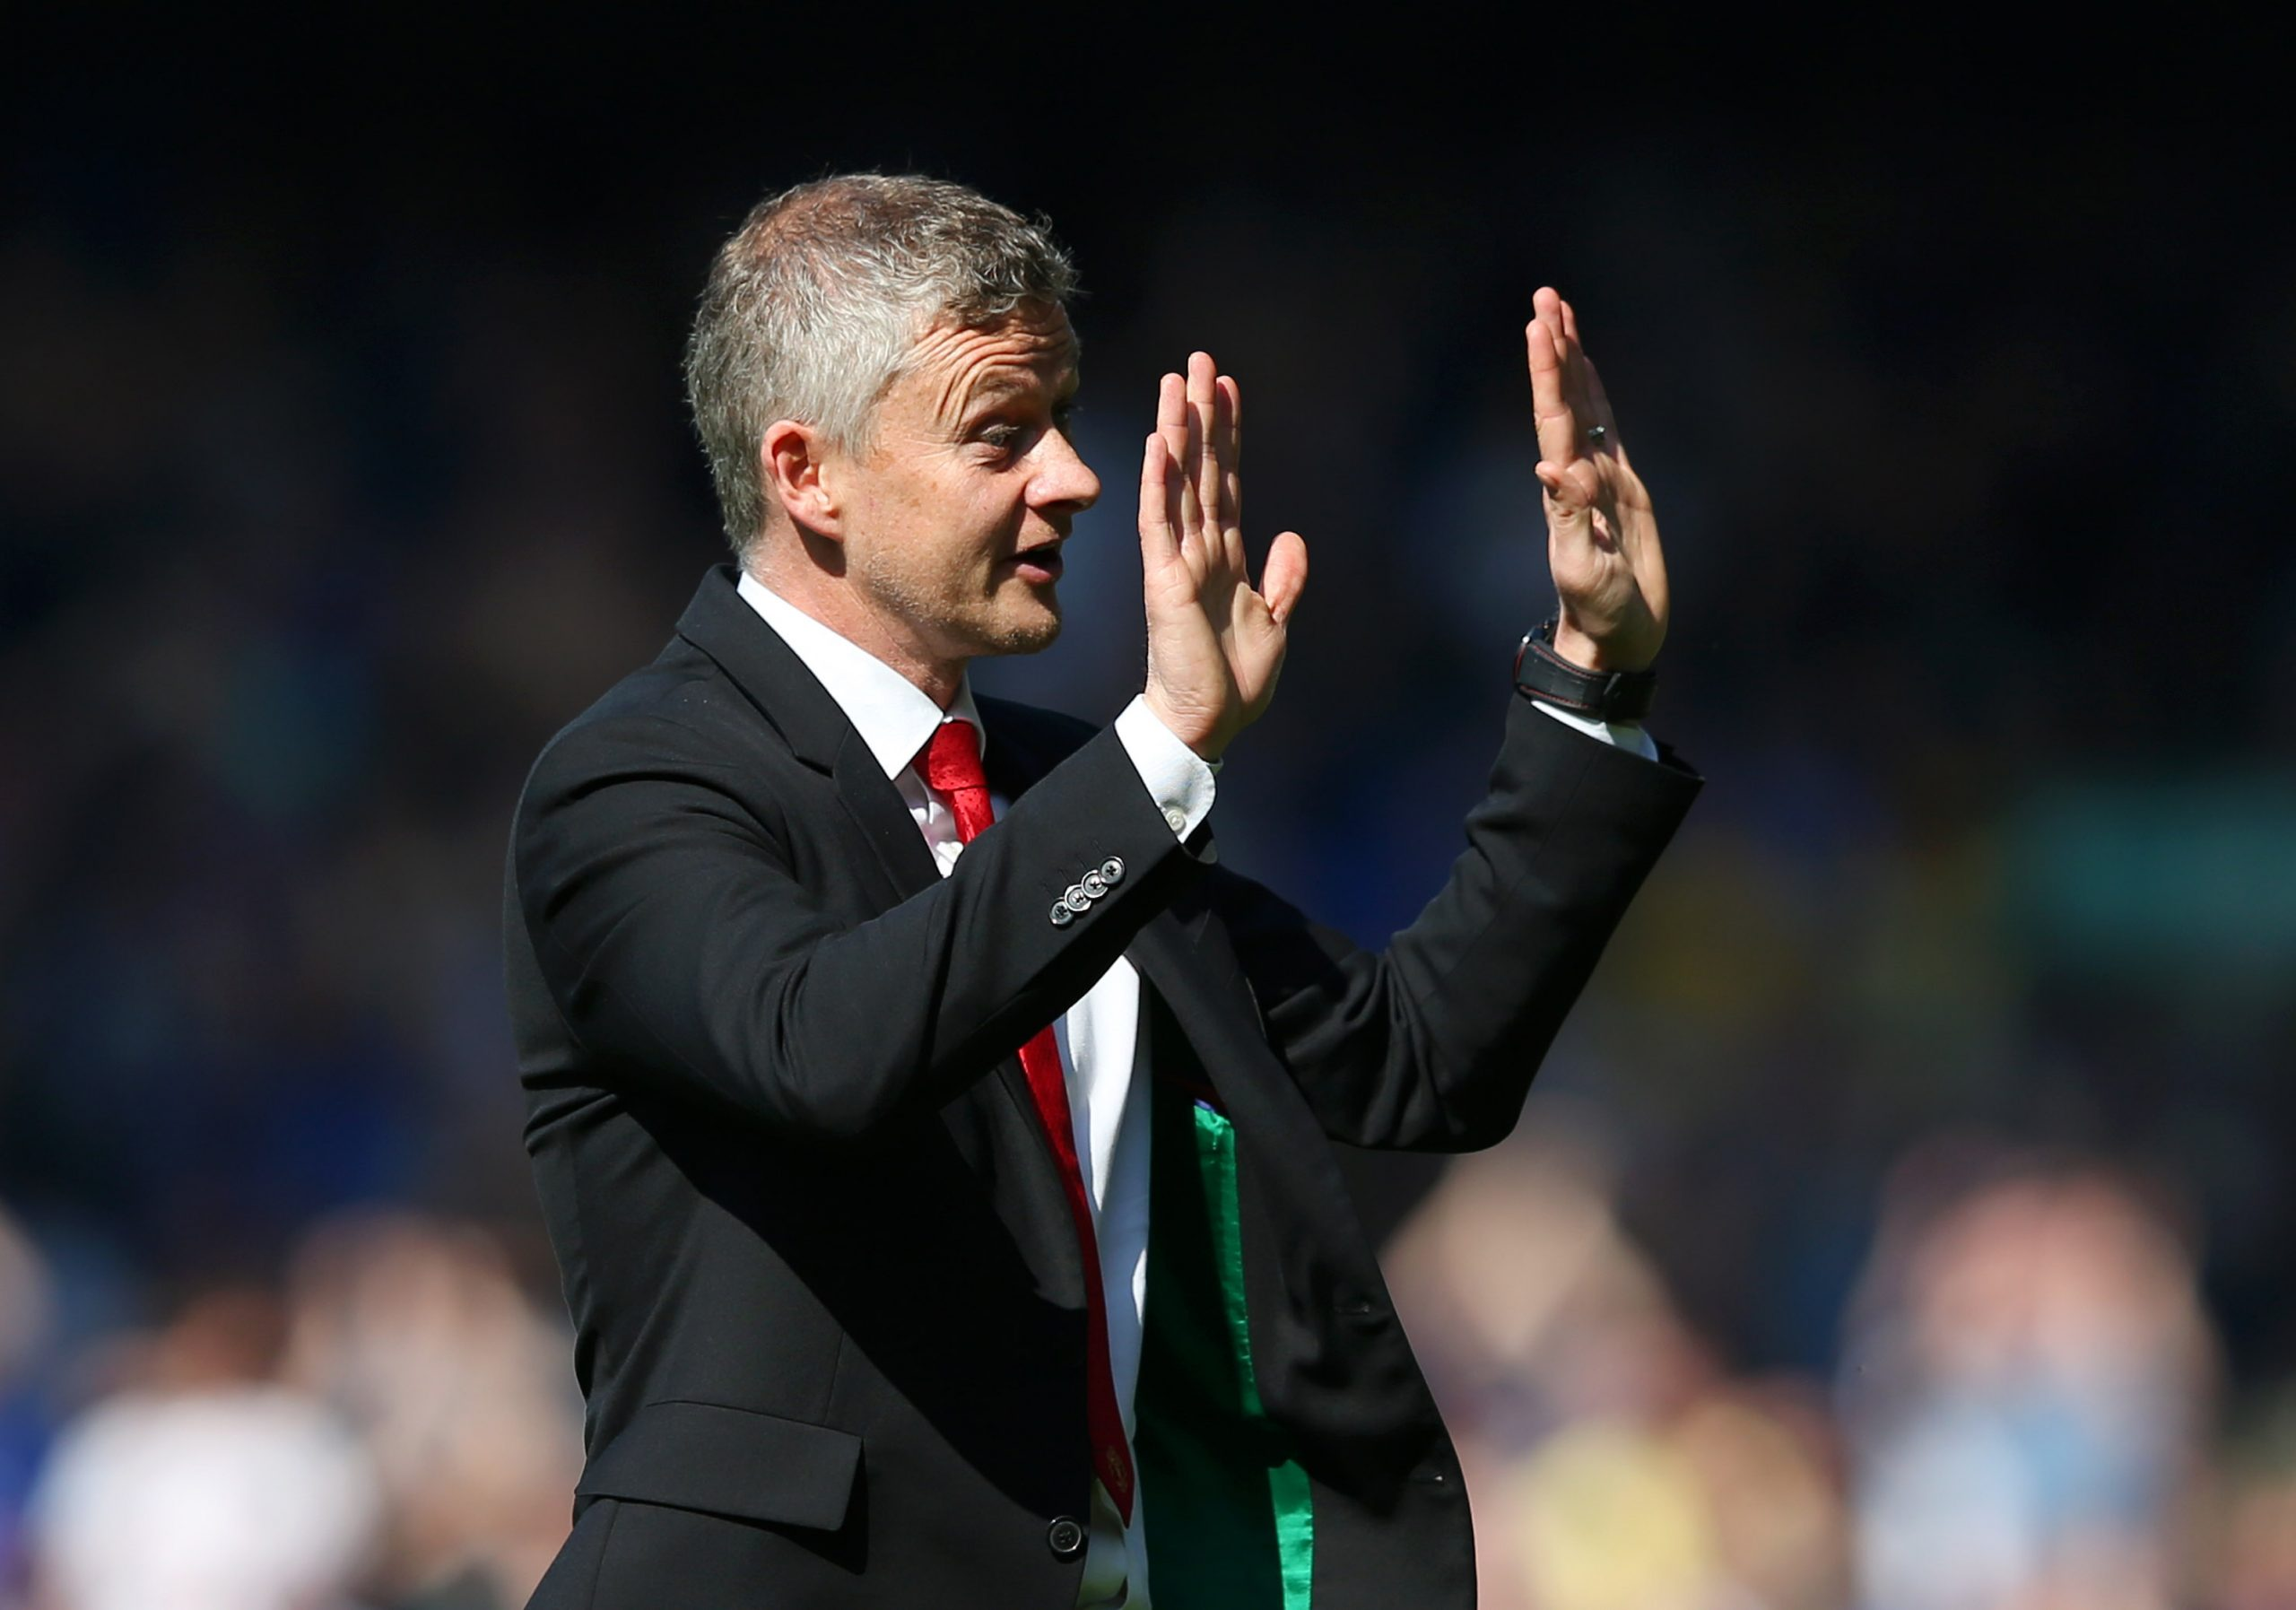 Ole Gunnar Solskjaer says Manchester United may be active in the January transfer window if a long-term target becomes available. (GETTY Images)